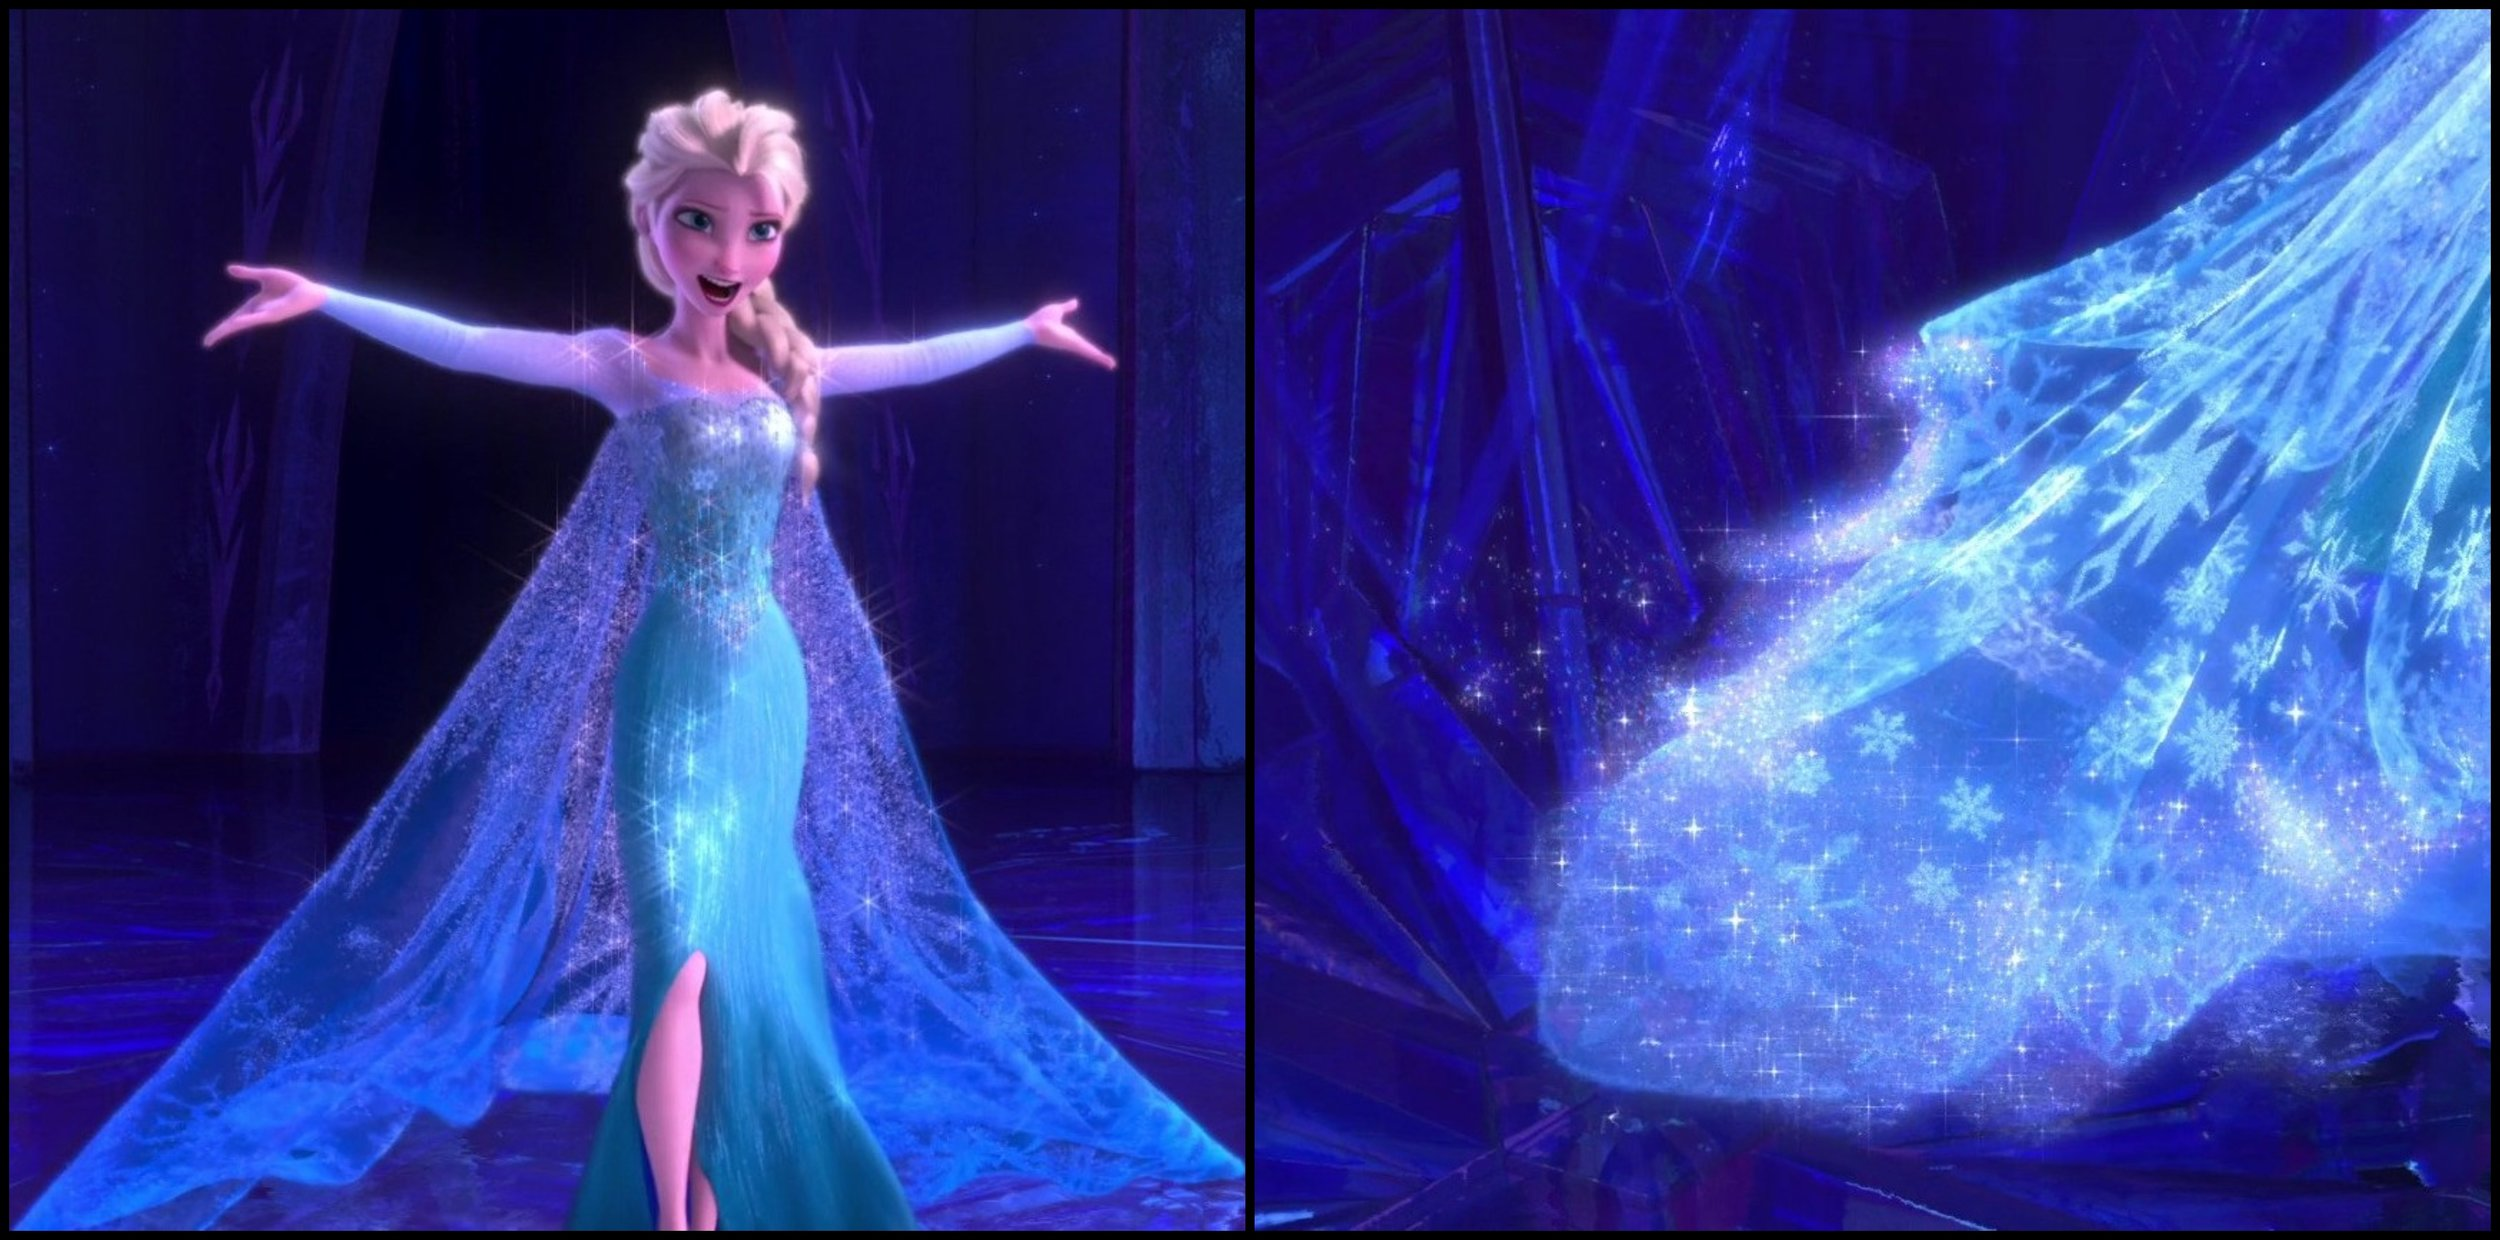 Figs. 4 & 5 - Elsa's ice dress in  Frozen  is a computer-generated textile that is not possible to create in real life. Such feature is an example of the fantasy element included in costume design that supports the character and narrative.